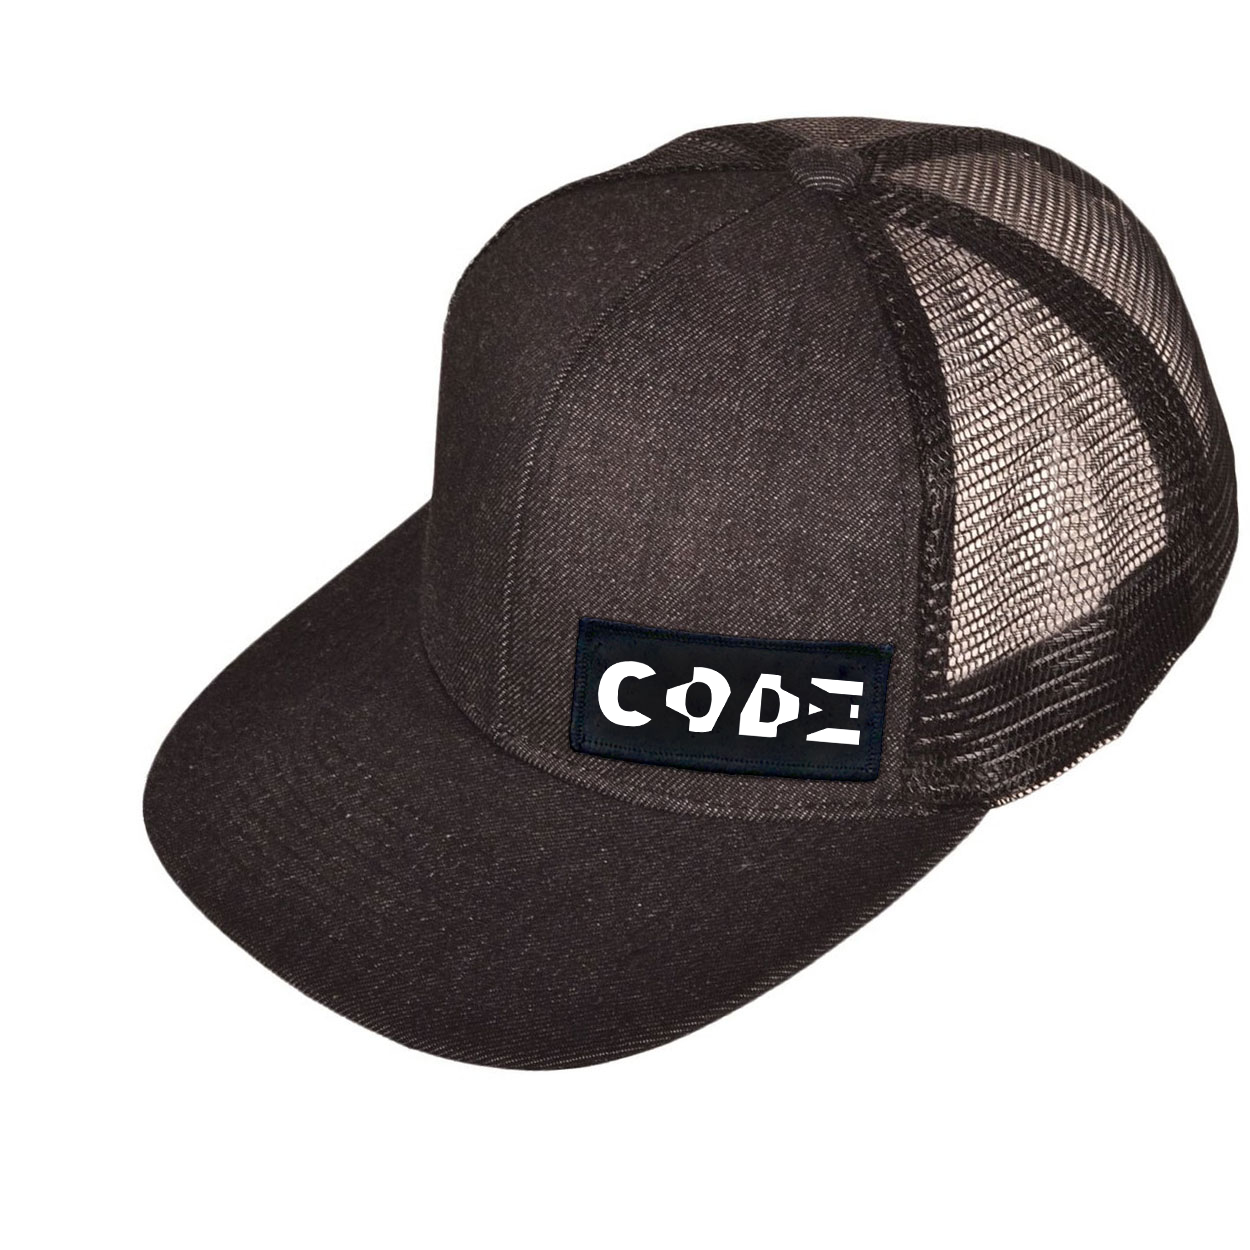 Code Tag Logo Night Out Woven Patch Snapback Flat Brim Hat Black Denim (White Logo)